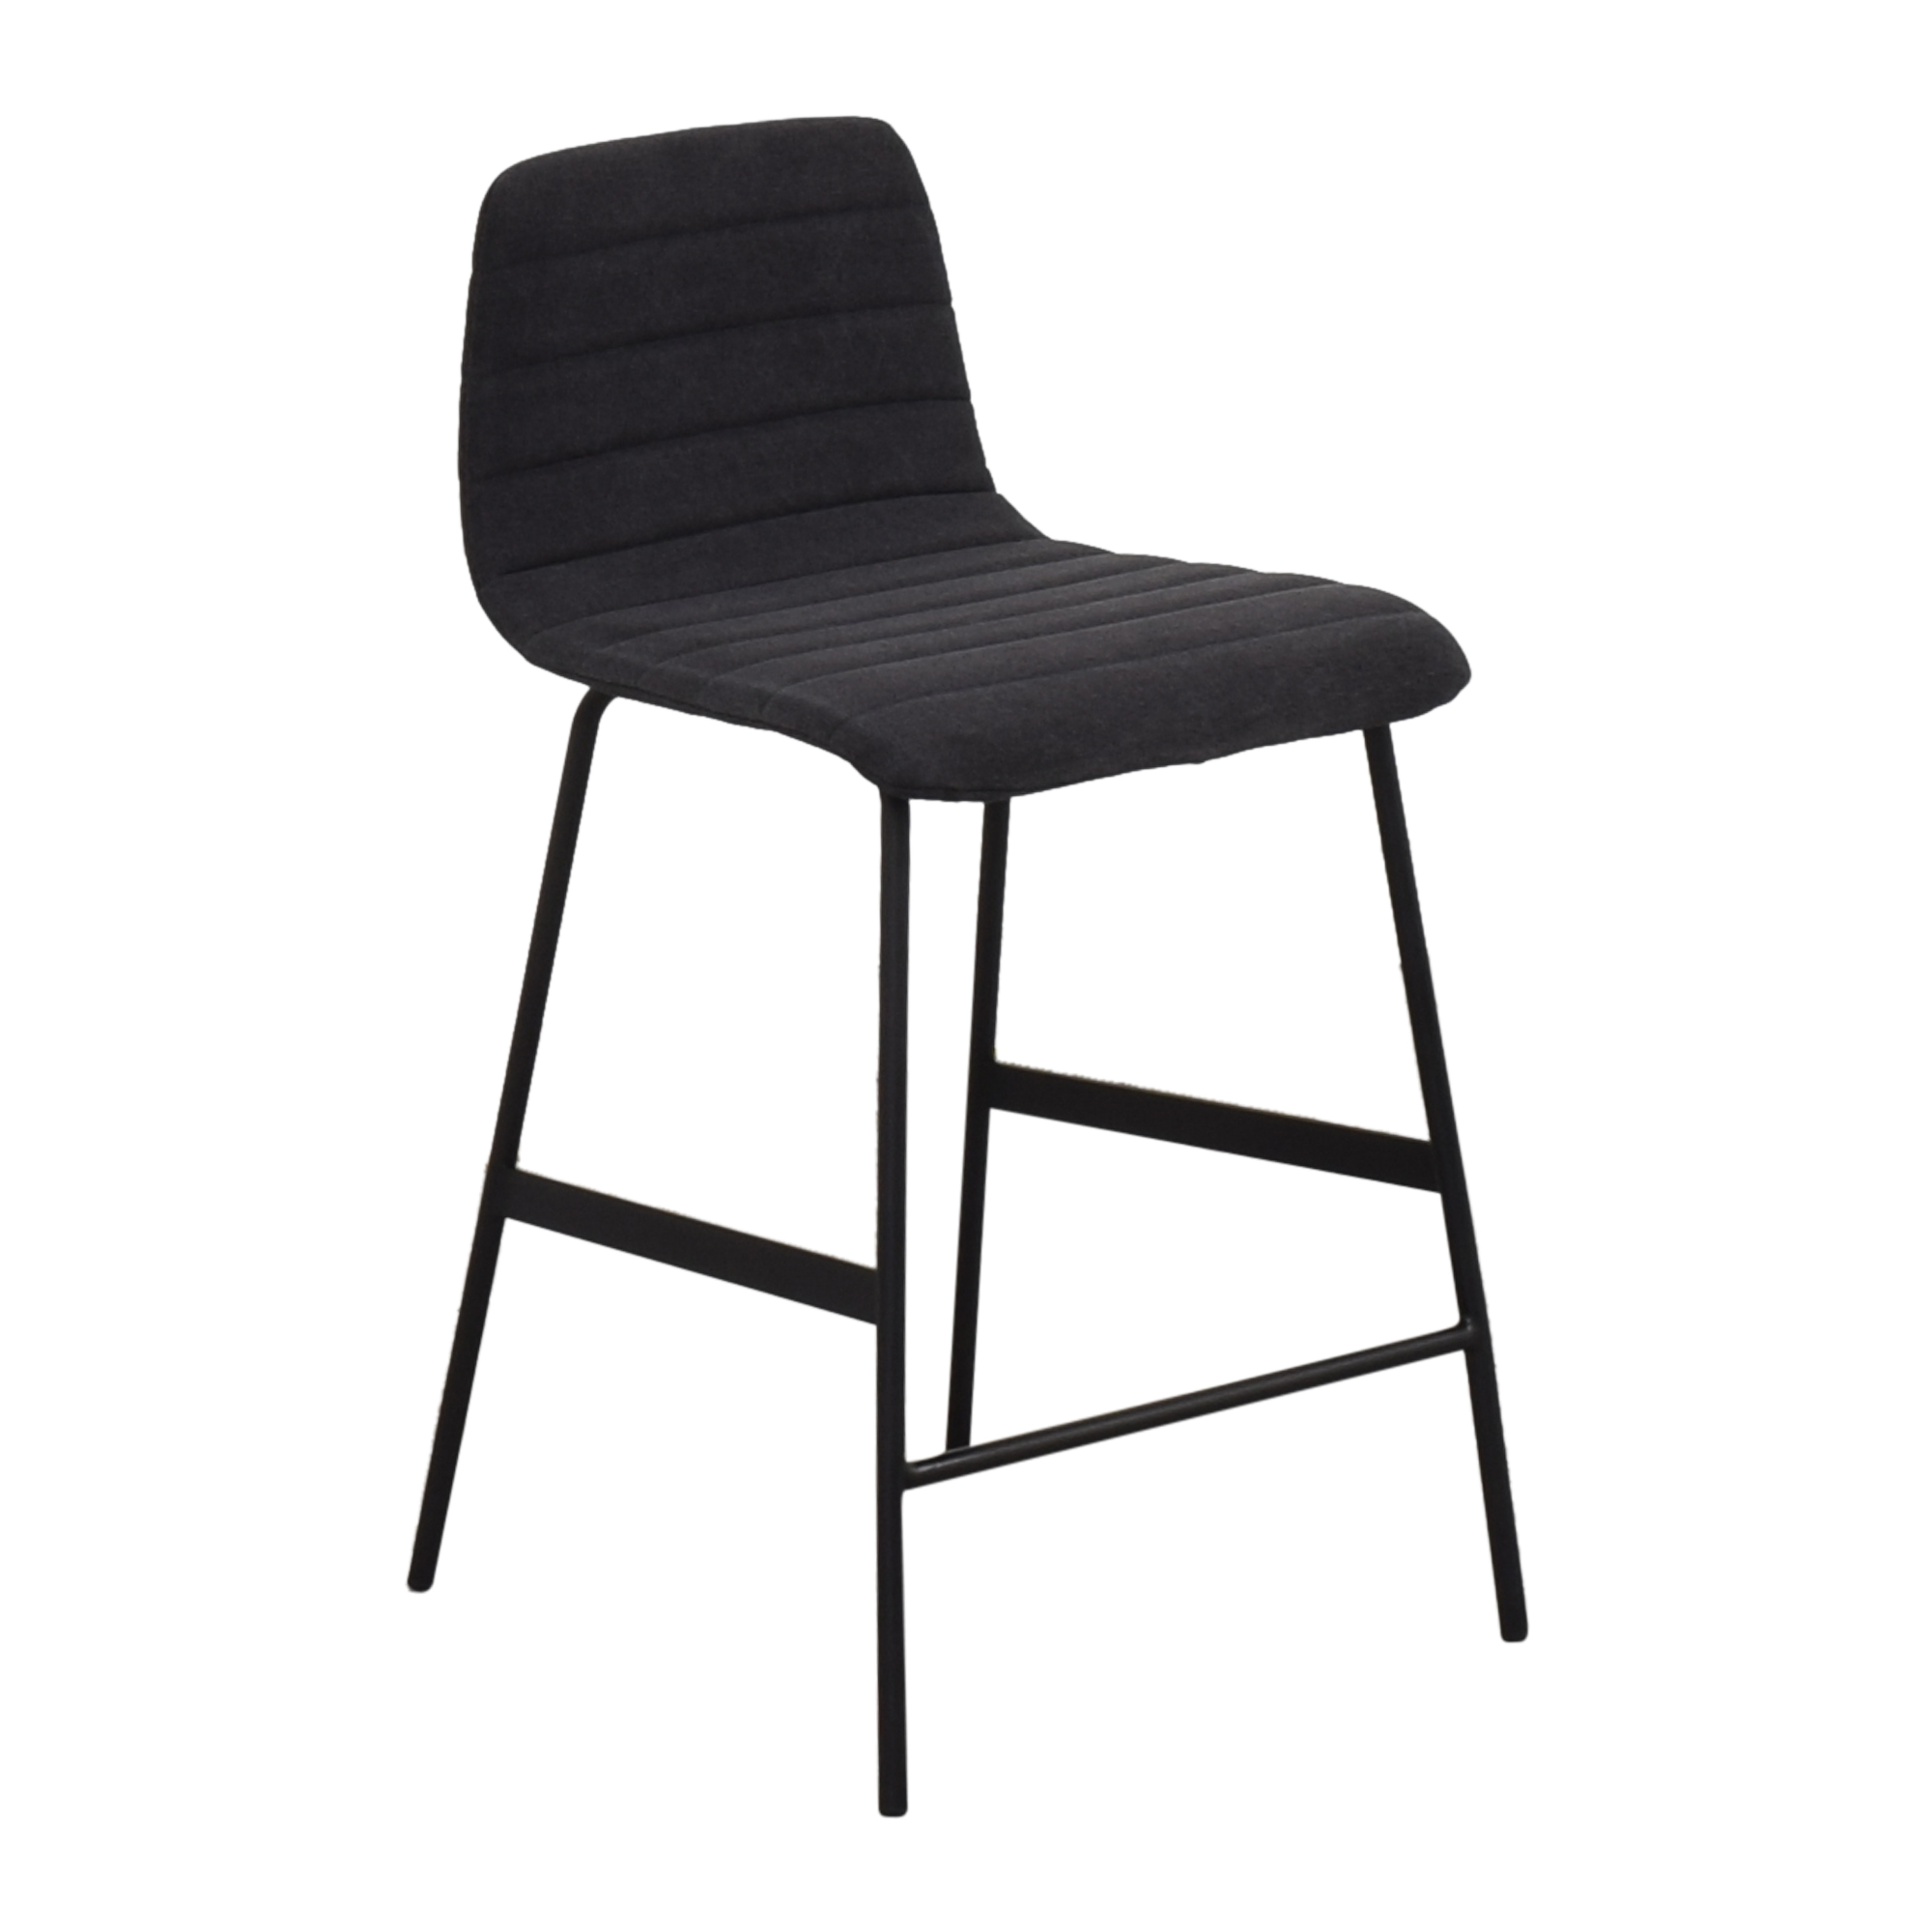 Gus Modern Gus Modern Lecture Stool second hand